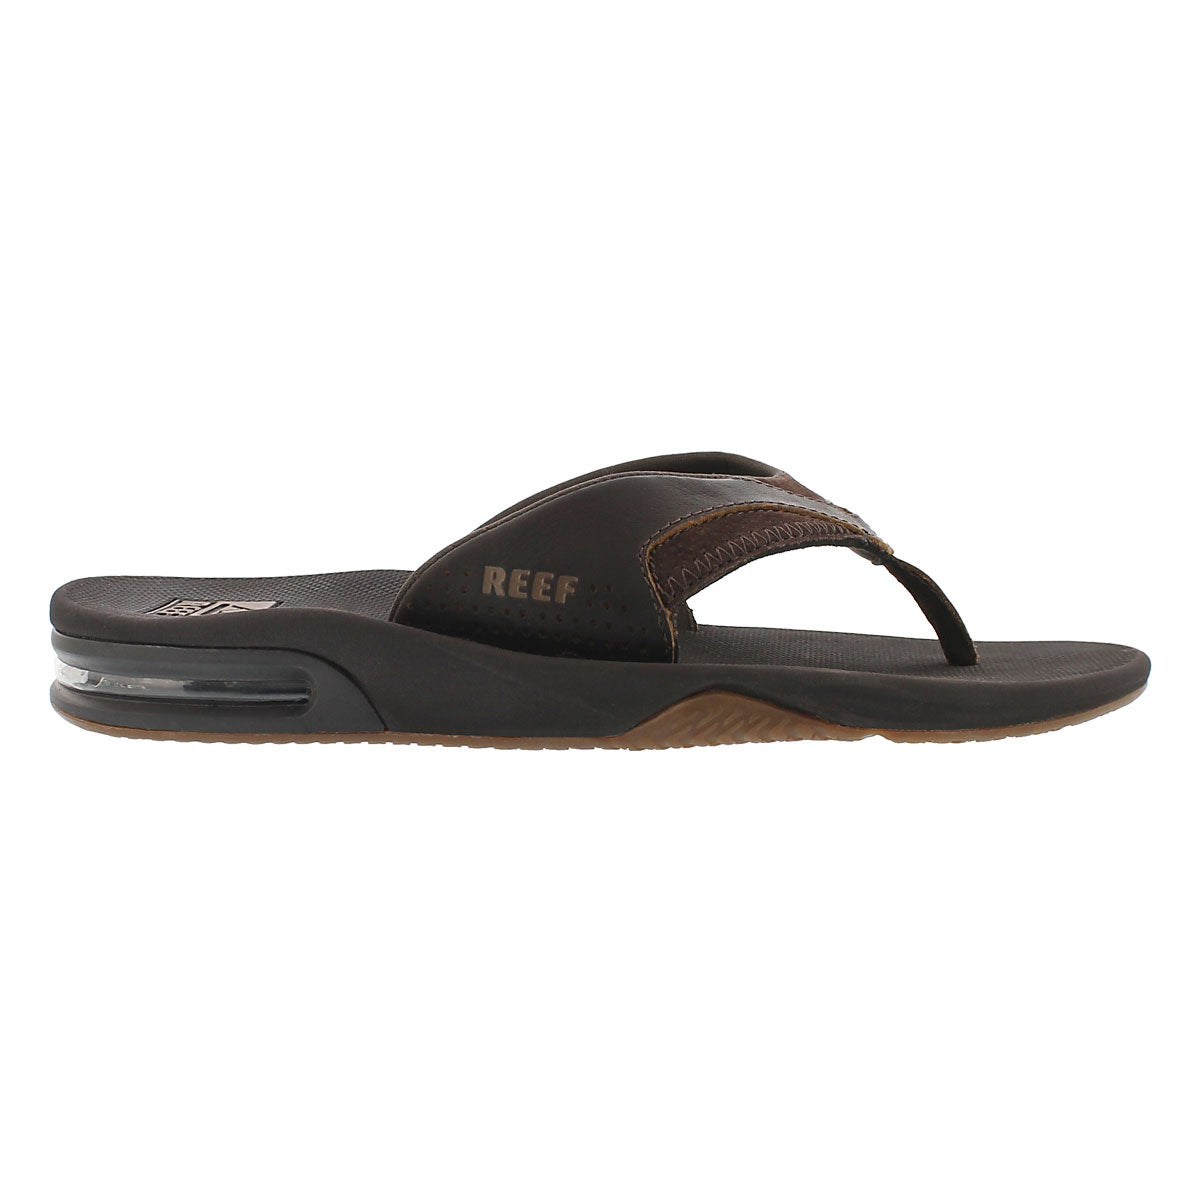 Mns Leather Fanning brown thong sandal